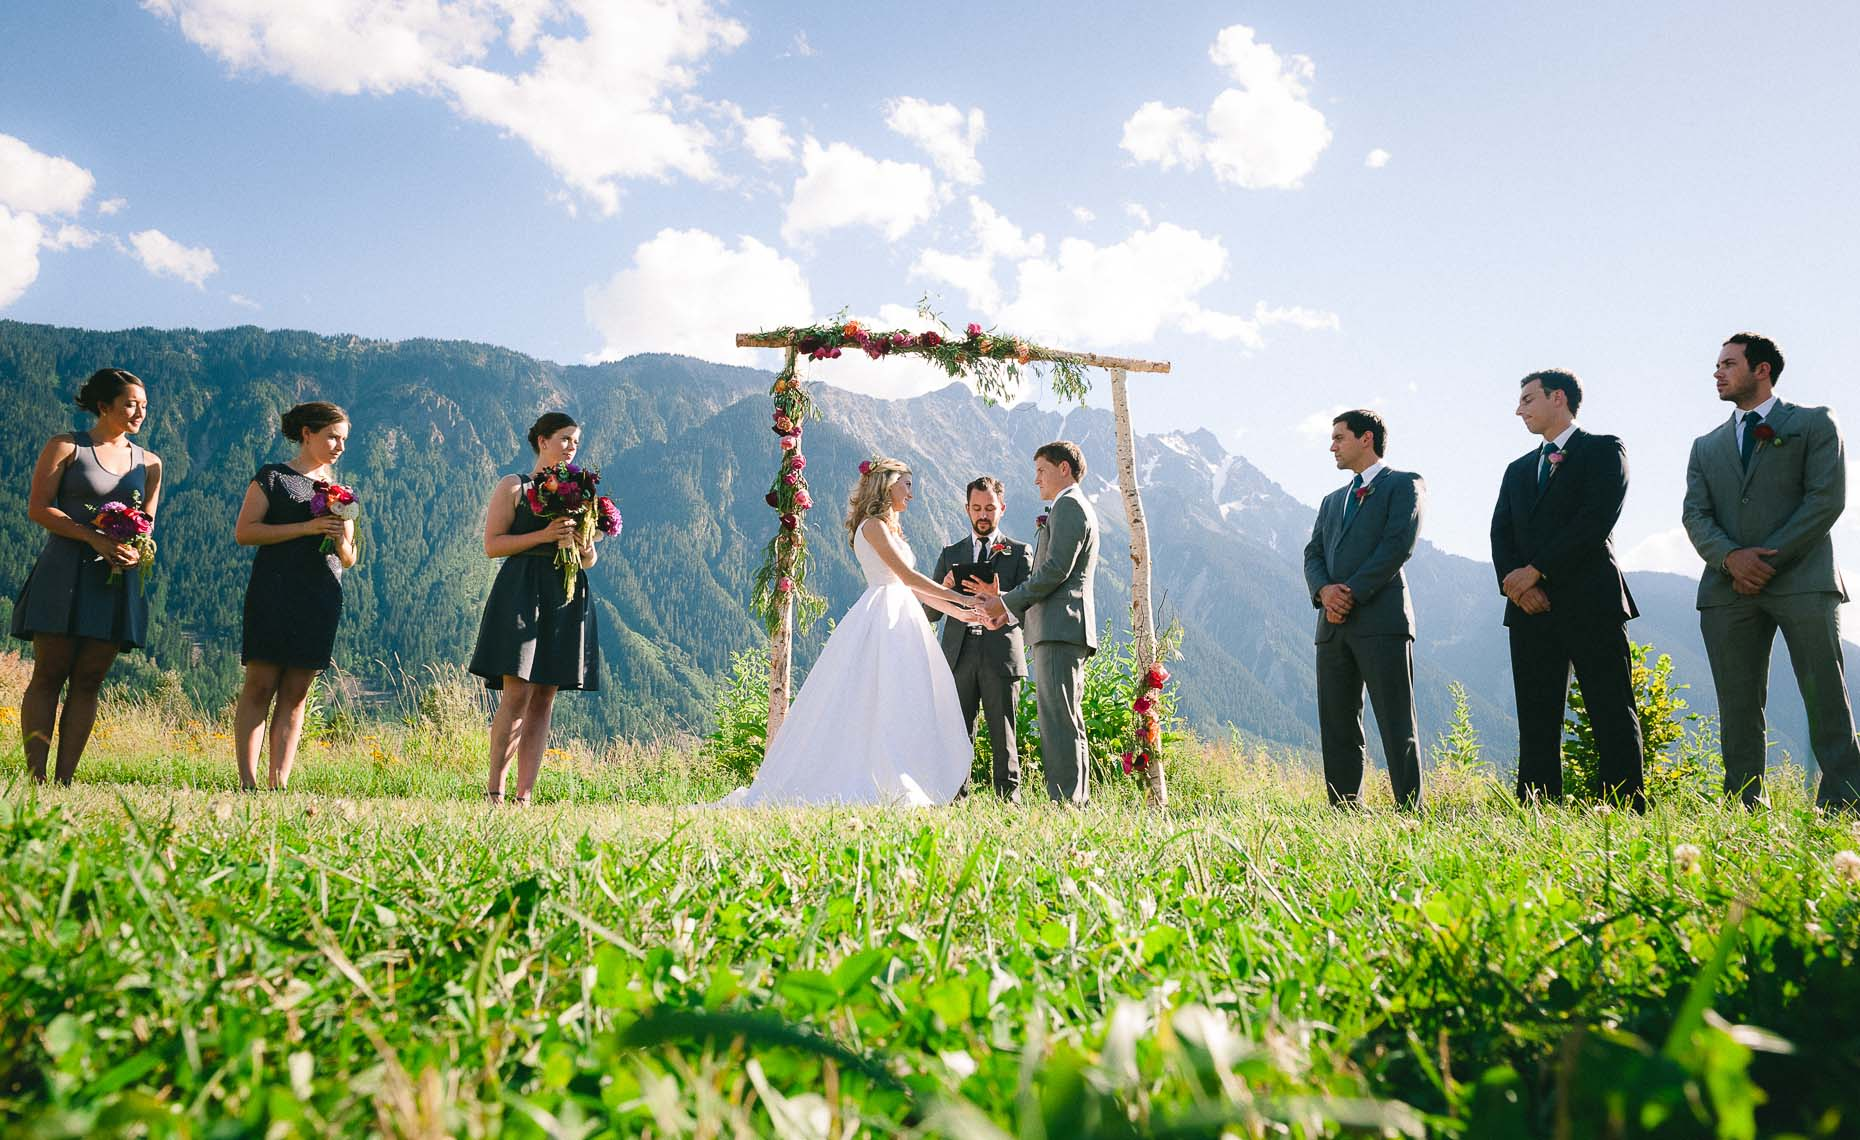 Homemade rustic archway at whistler wedding